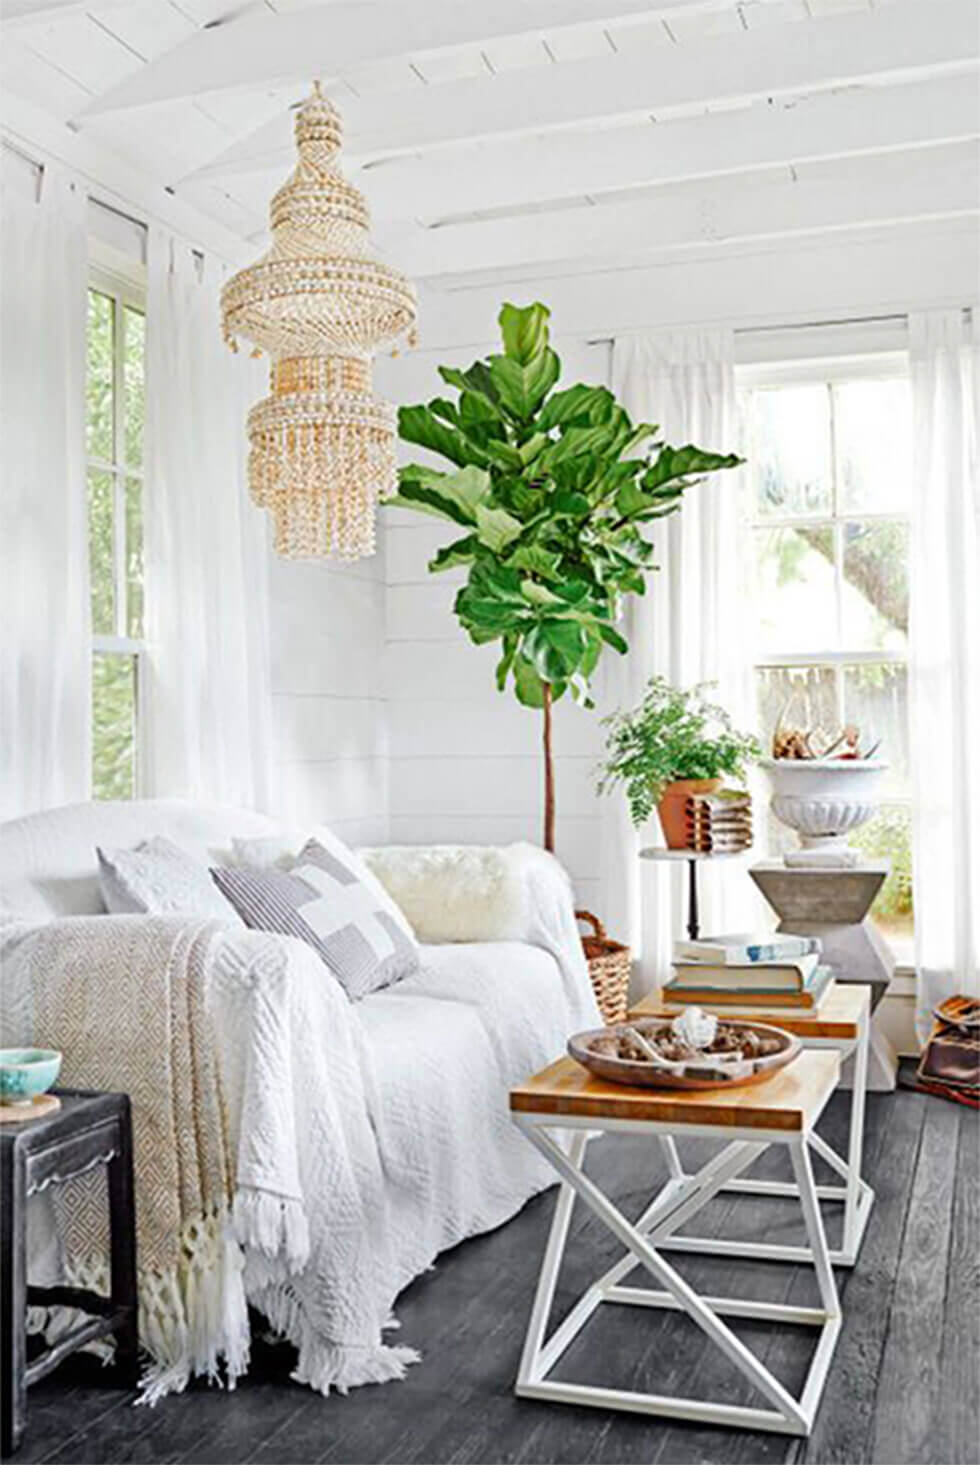 Bohemian white living room with natural chandelier and large plant.